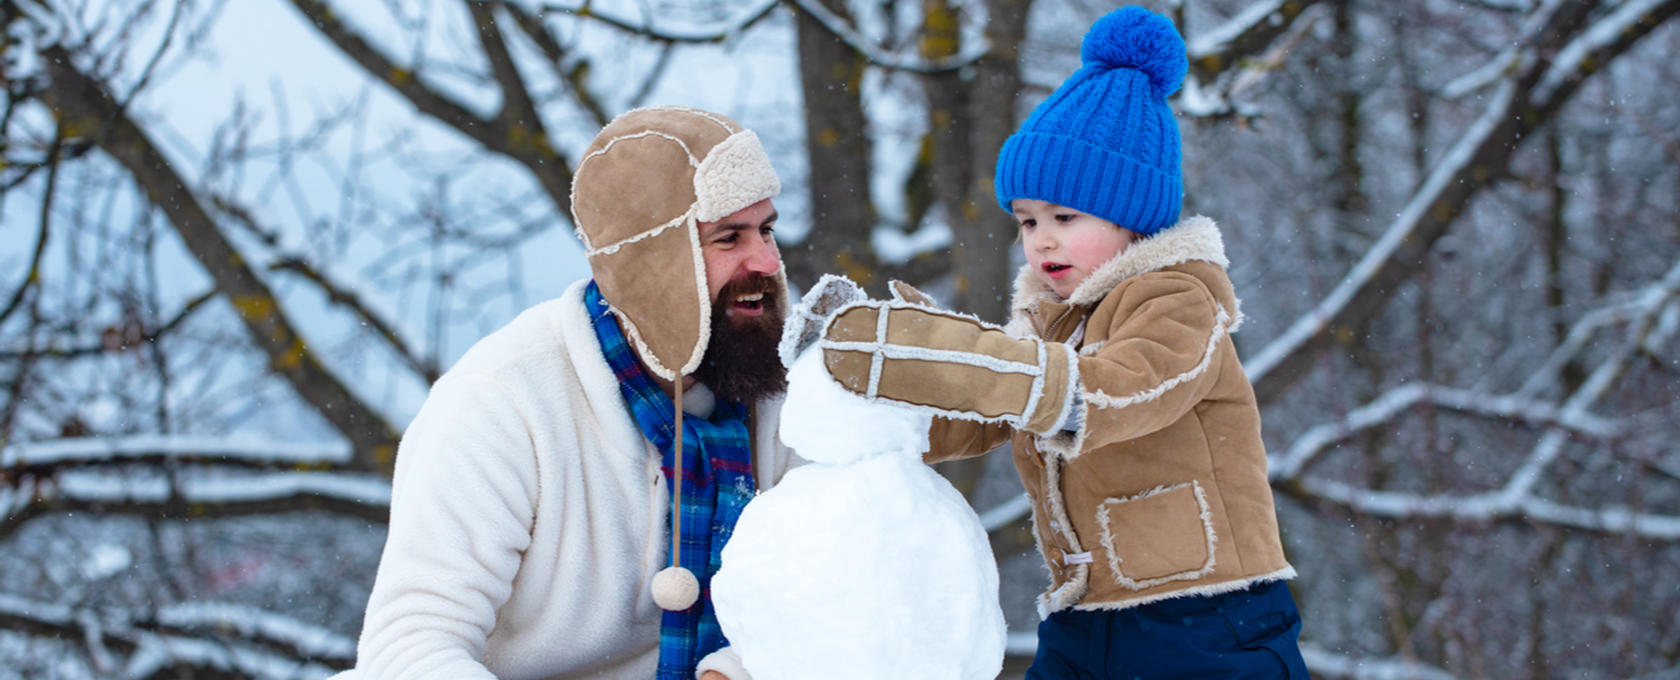 Dad and son making a snowman